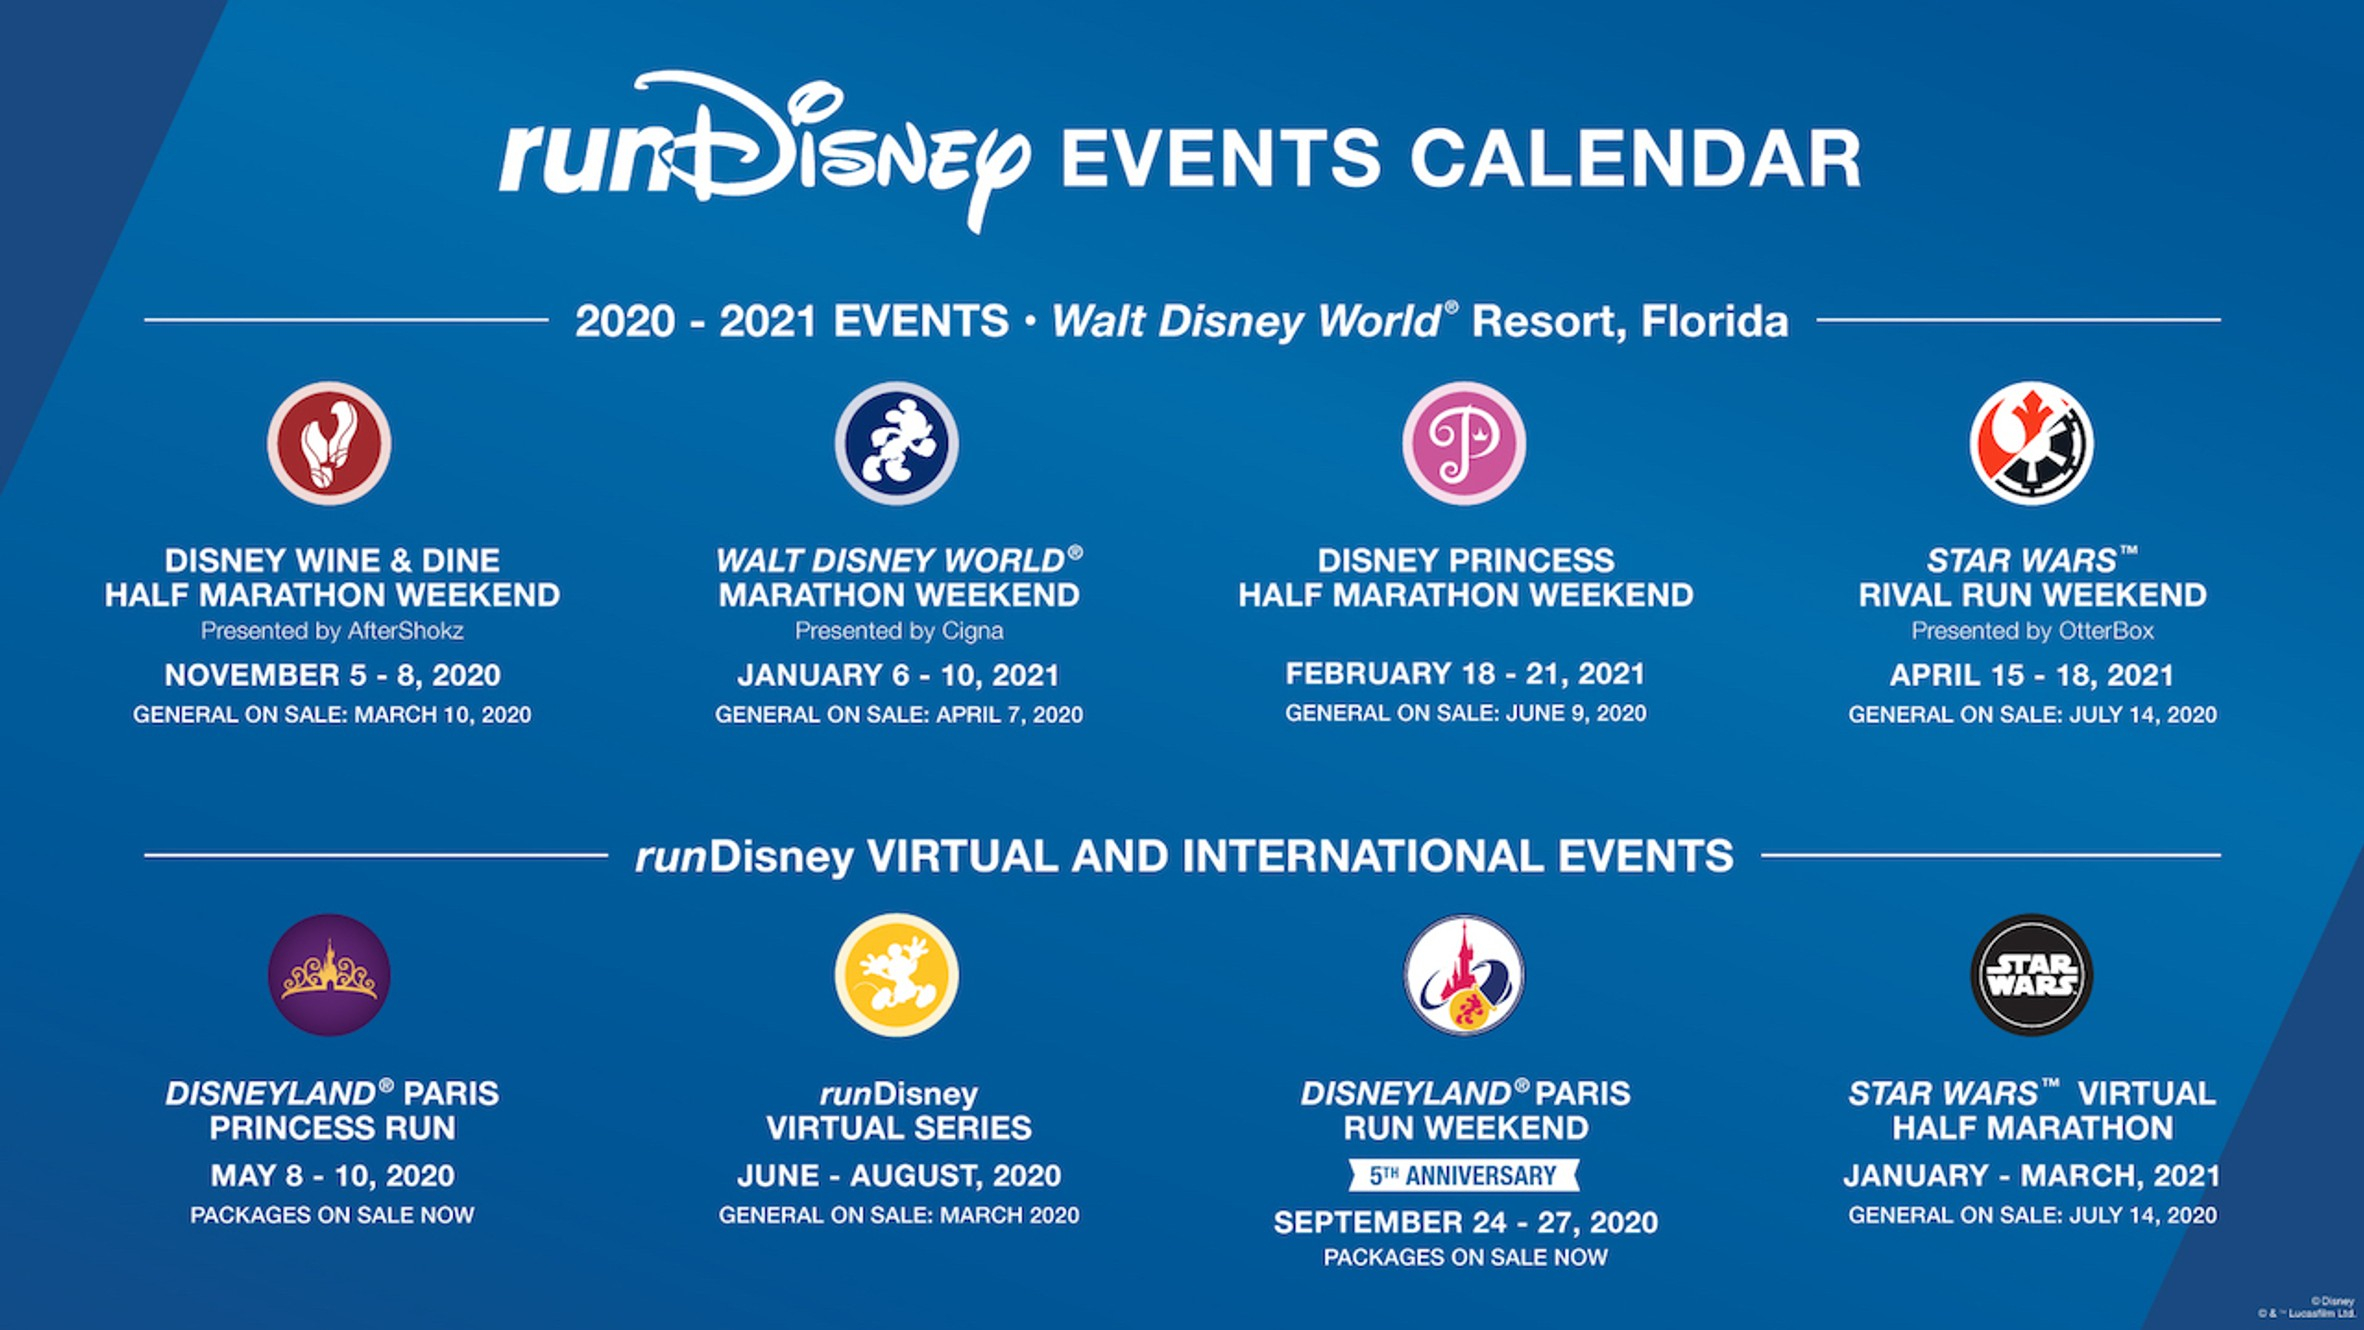 Rundisney Race Calendar For 2020-2021 intended for Cape May Calendar Of Events 2021